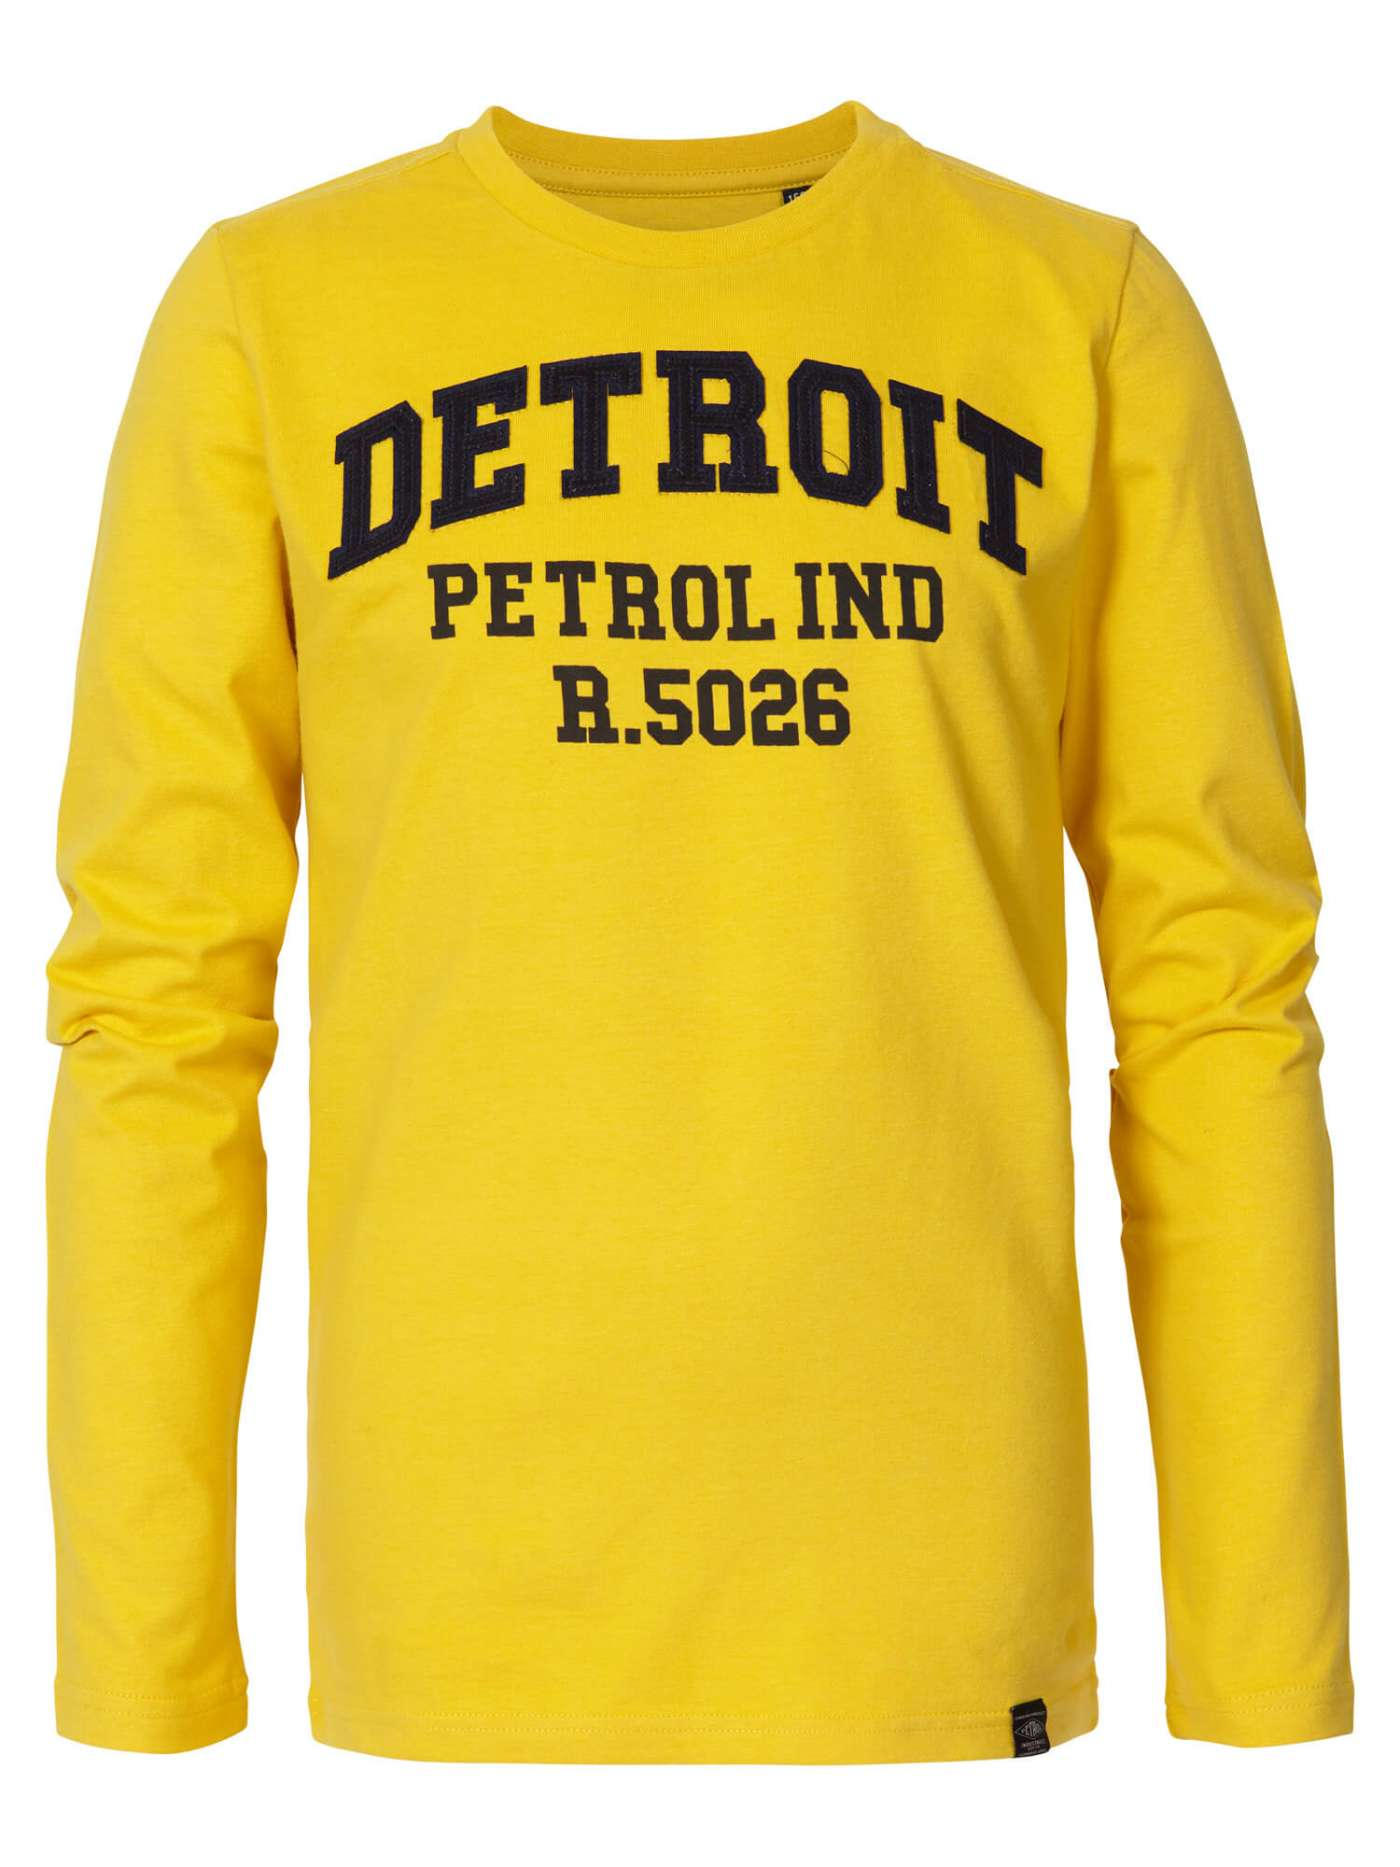 Long-sleeved Detroit coloured shirt